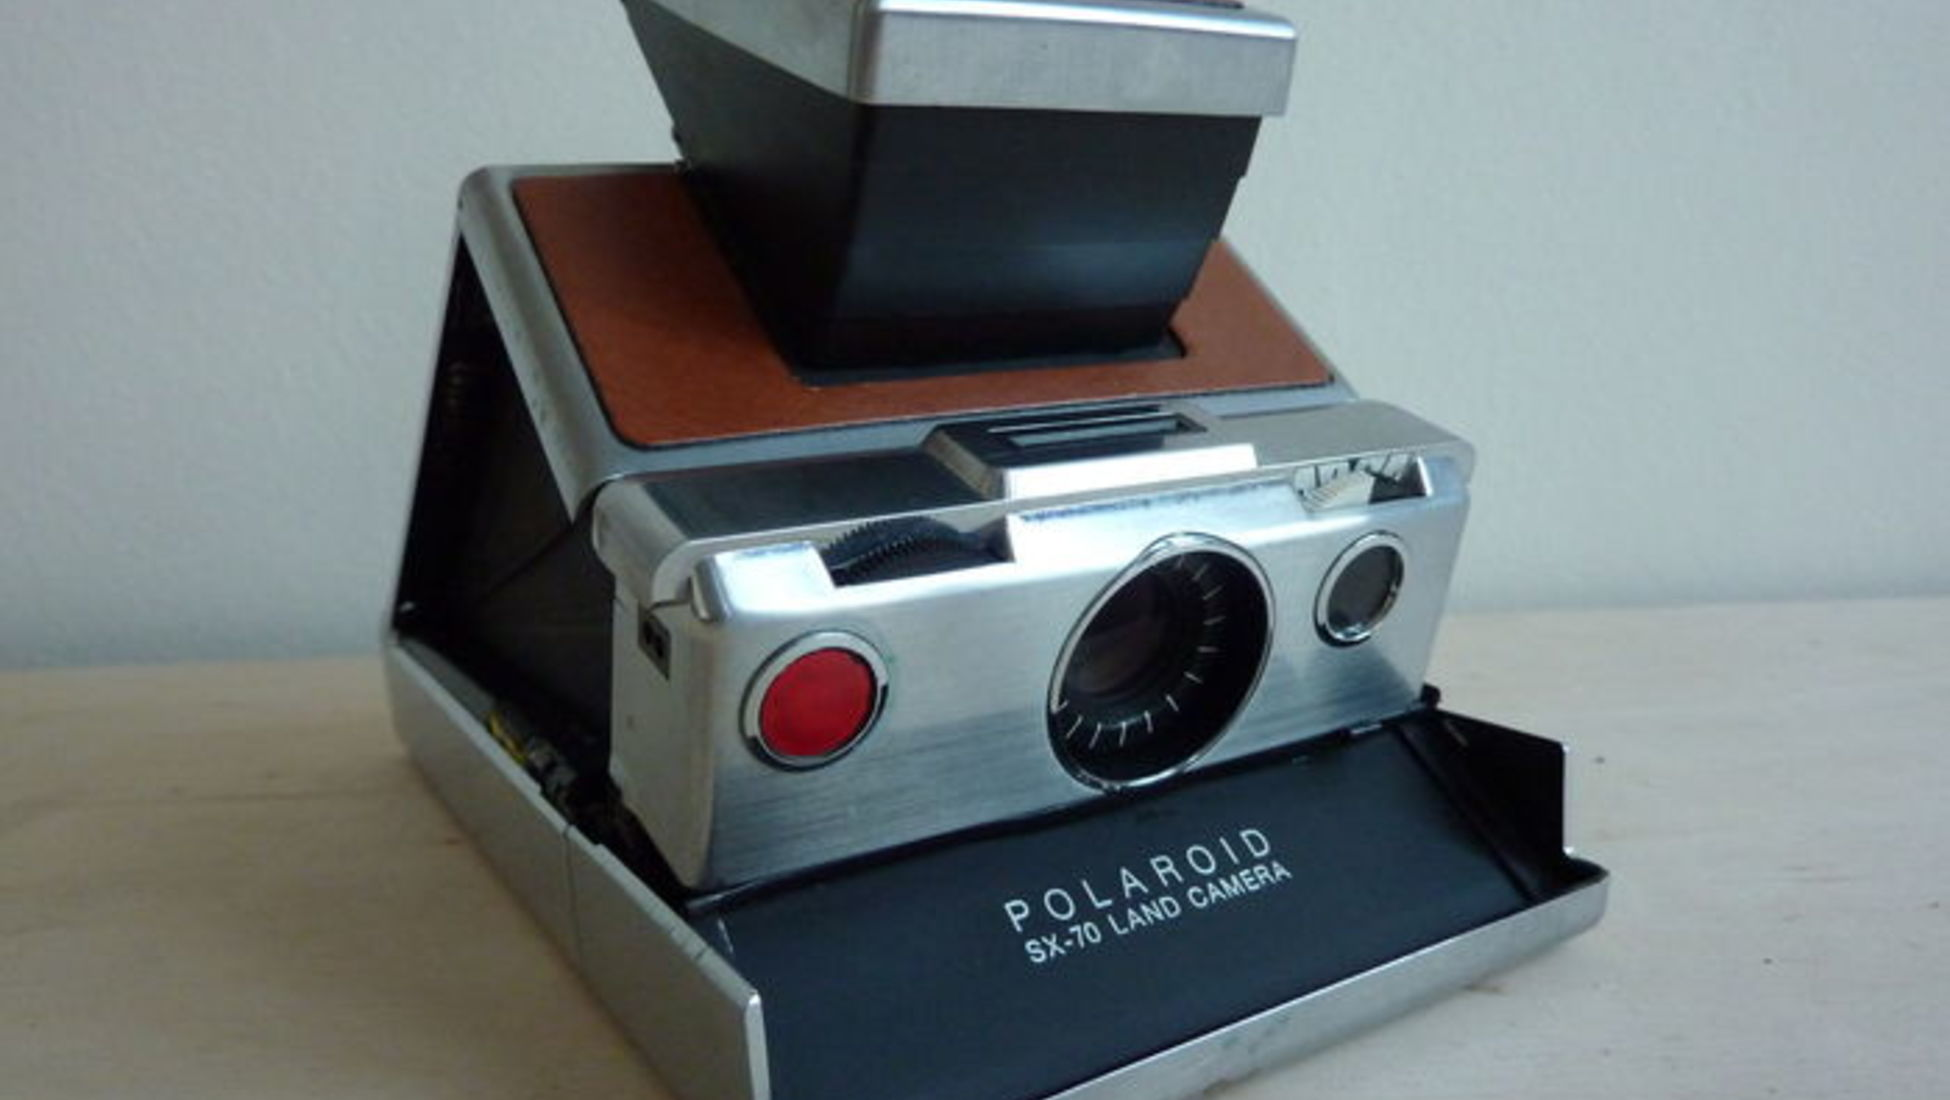 Rare Polaroid SX-70 Land Camera Sonar Onestep Gold. - €135. What s so  special about this model is the 24 carat gold plating. Produced in 1977 for  Polaroid s ... 5678844987